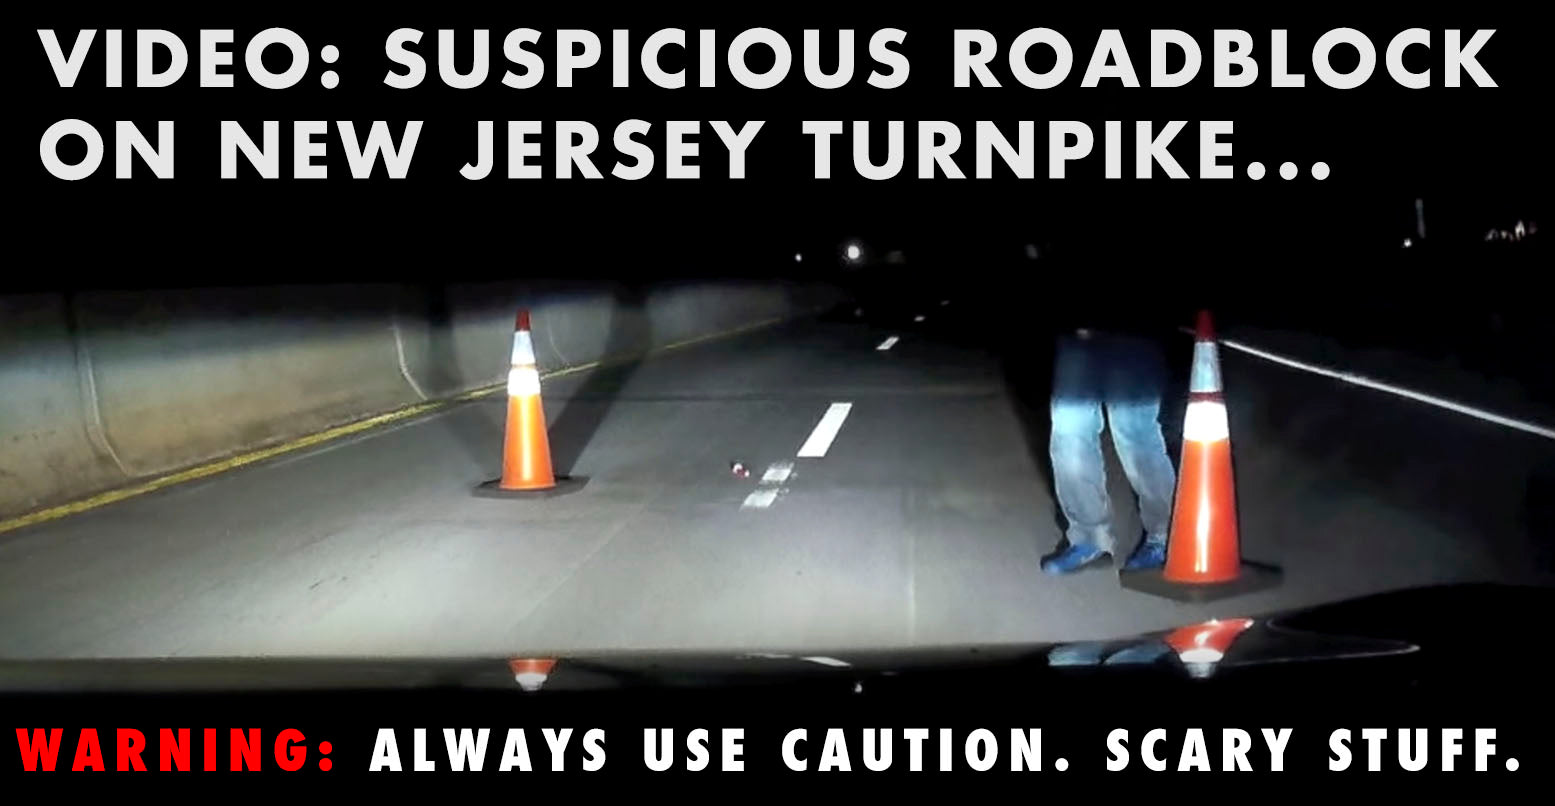 VIDEO: Suspicious Roadblock On NJ Turnpike... VERY SCARY